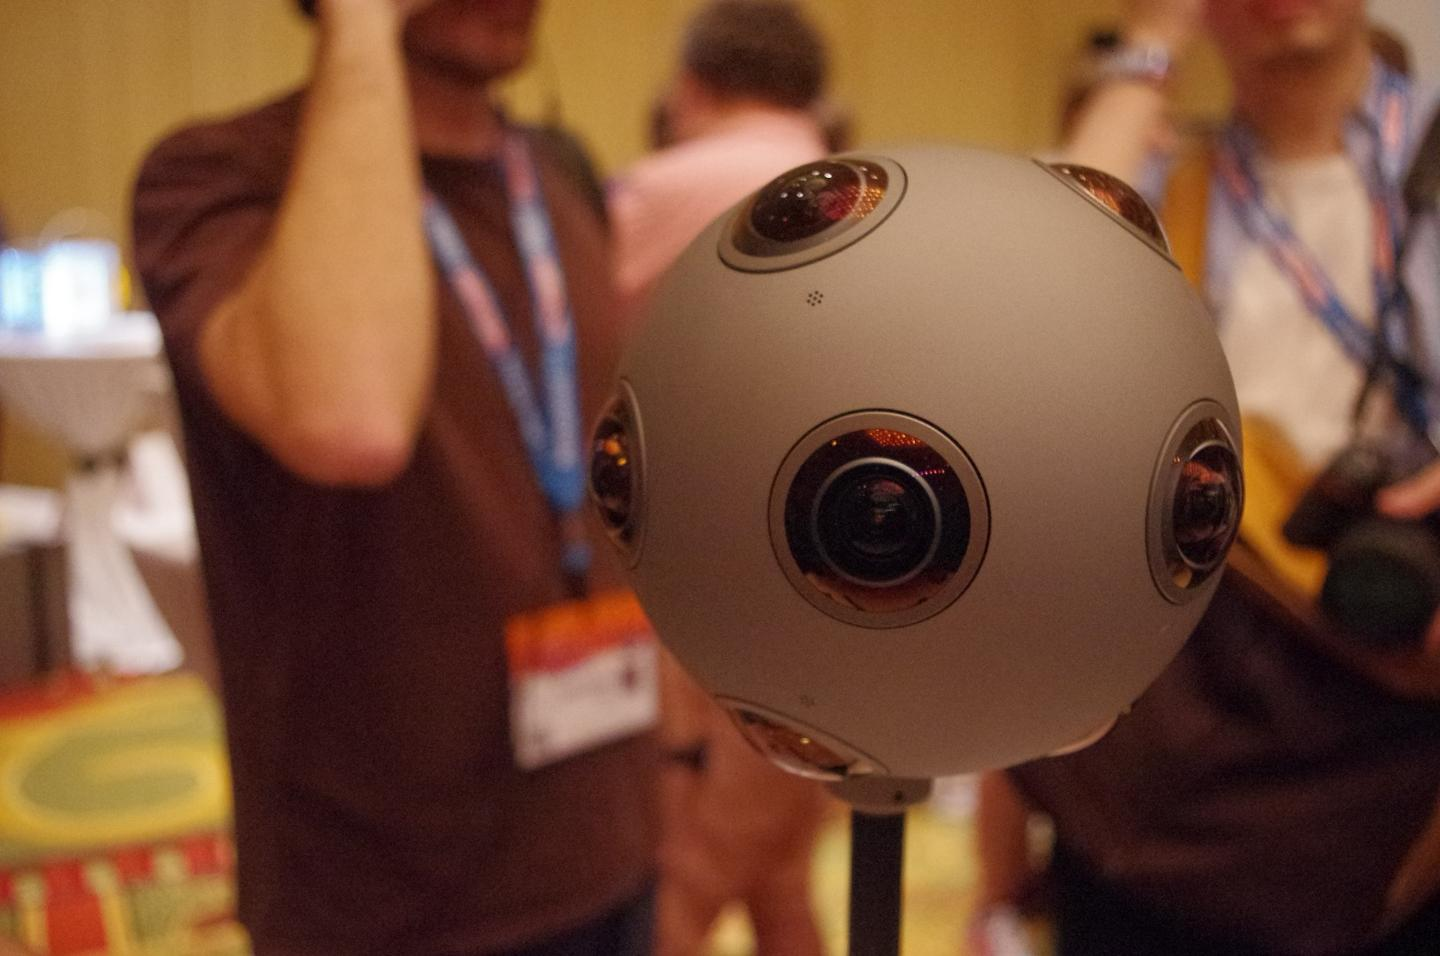 Nokia's Ozo is one of the finalists in the SXSW Interactive Innovation Awards